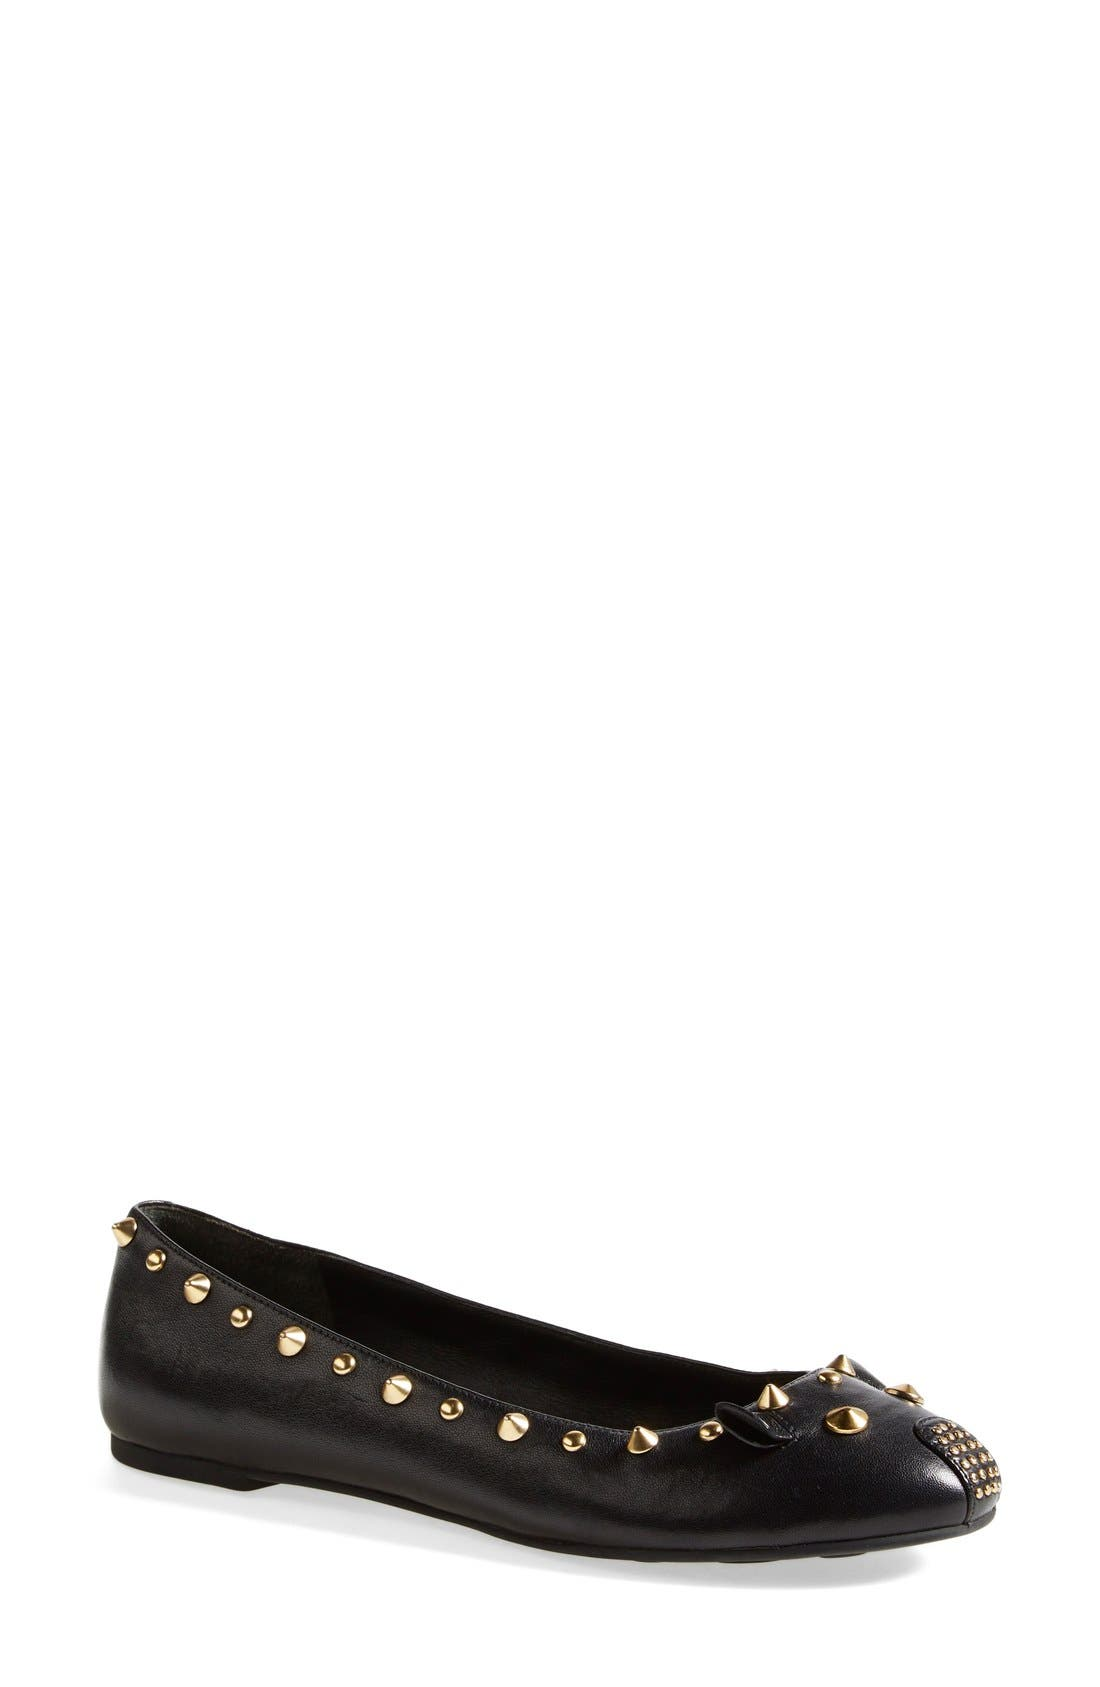 Main Image - MARC BY MARC JACOBS 'Punk Mouse' Ballerina Flat